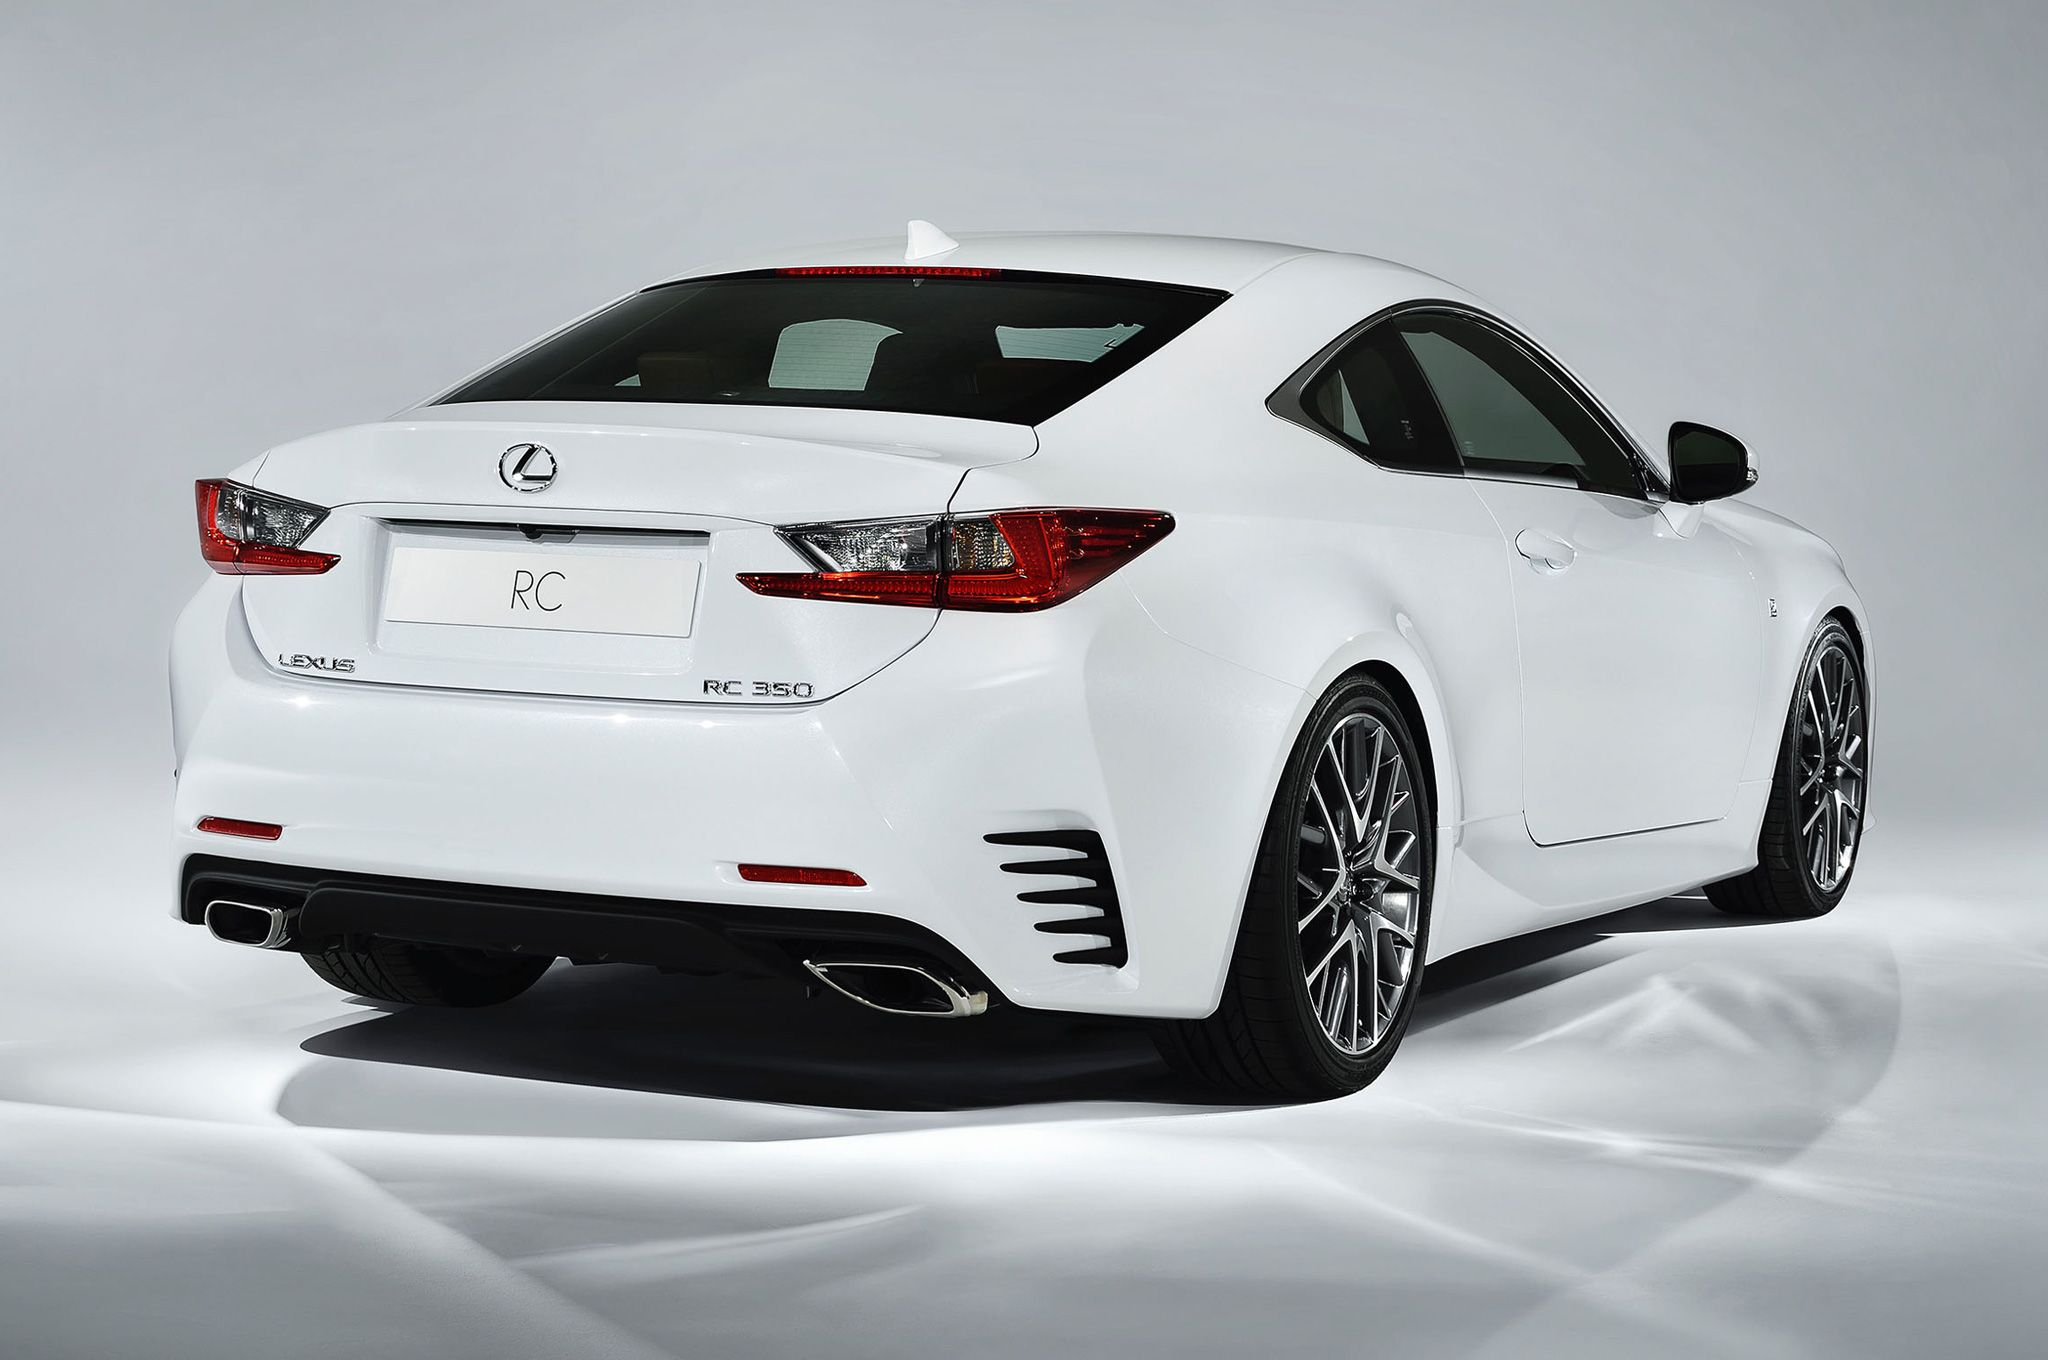 2017 Lexus Rc 350 F Sport Has Unveiled The Ahead Of Its Debut At Geneva Motor Show Car Videos Pinterest